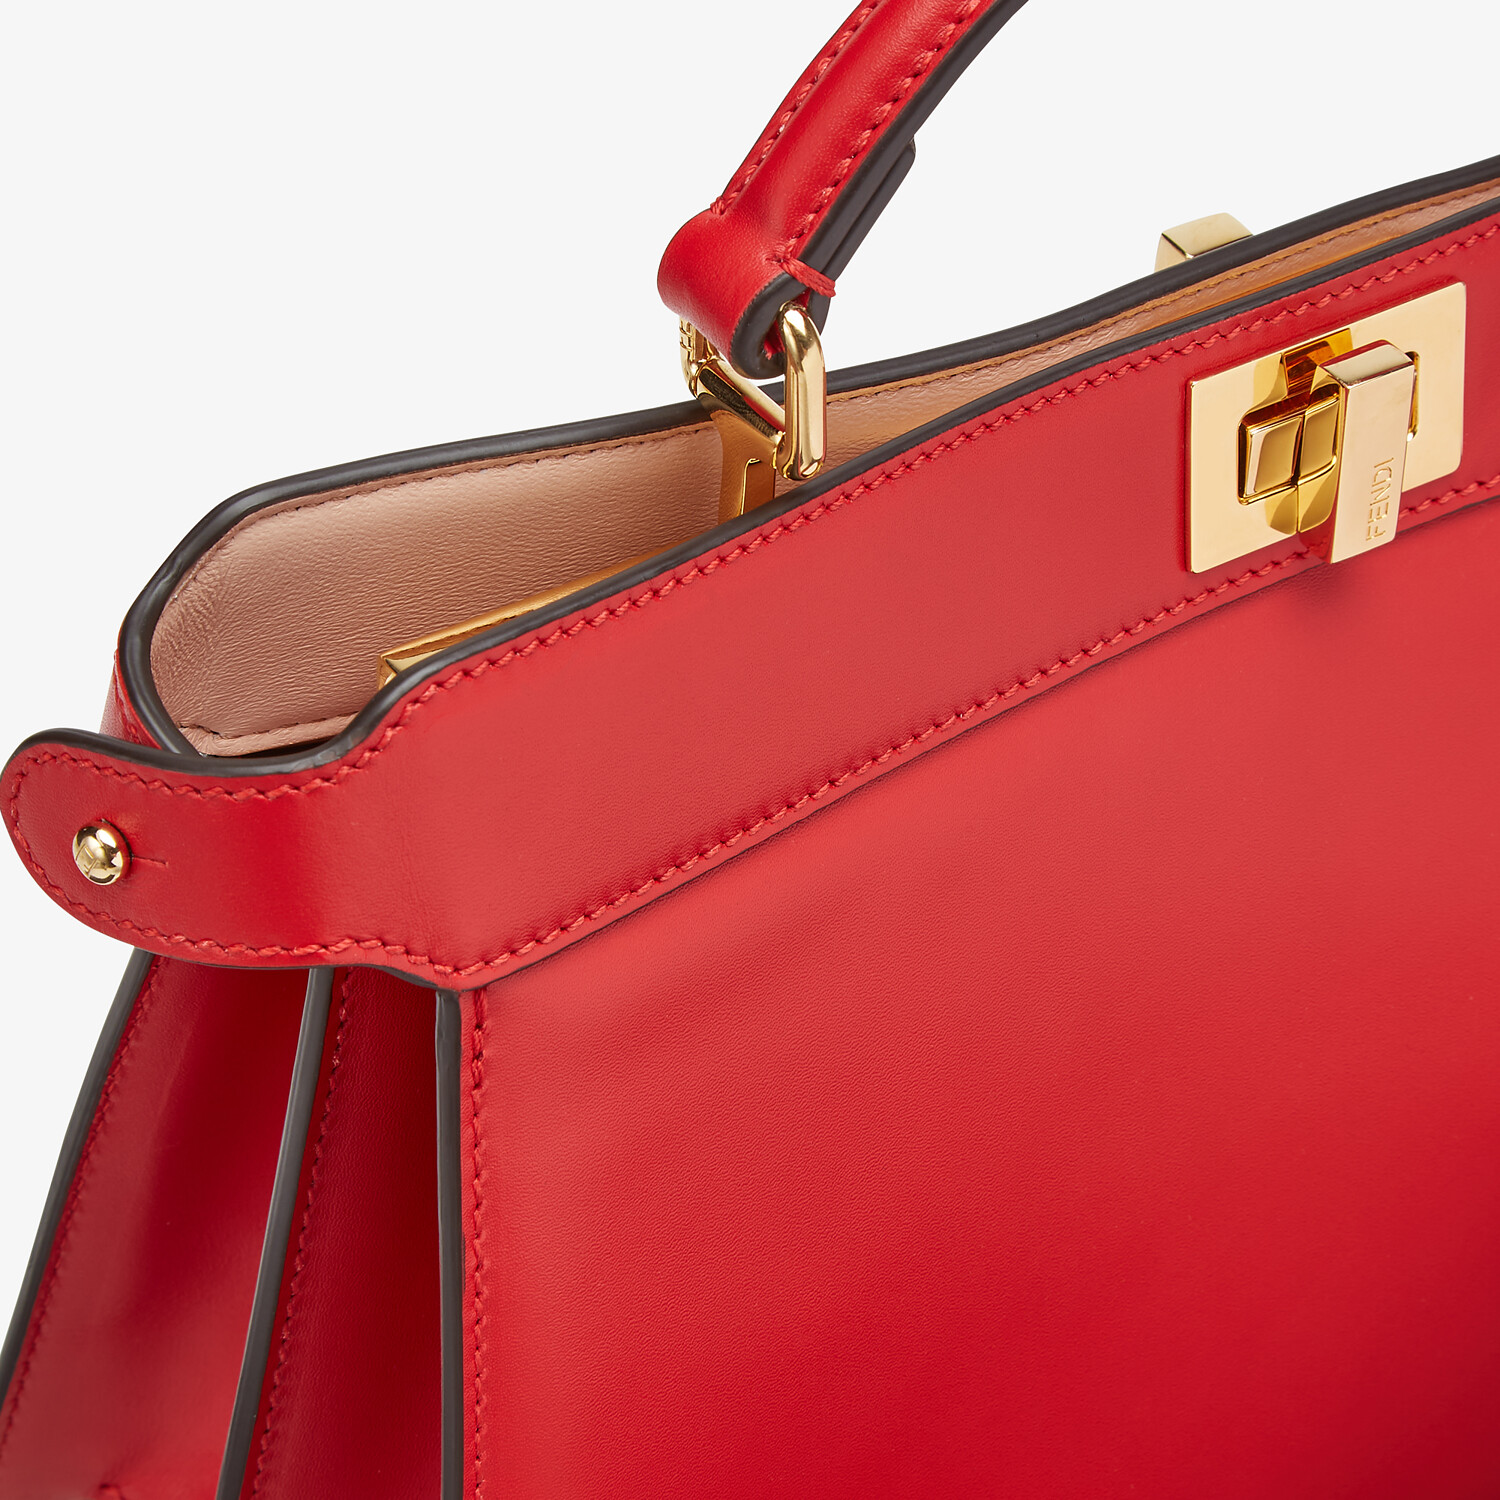 FENDI PEEKABOO ISEEU EAST-WEST - Red leather bag - view 6 detail